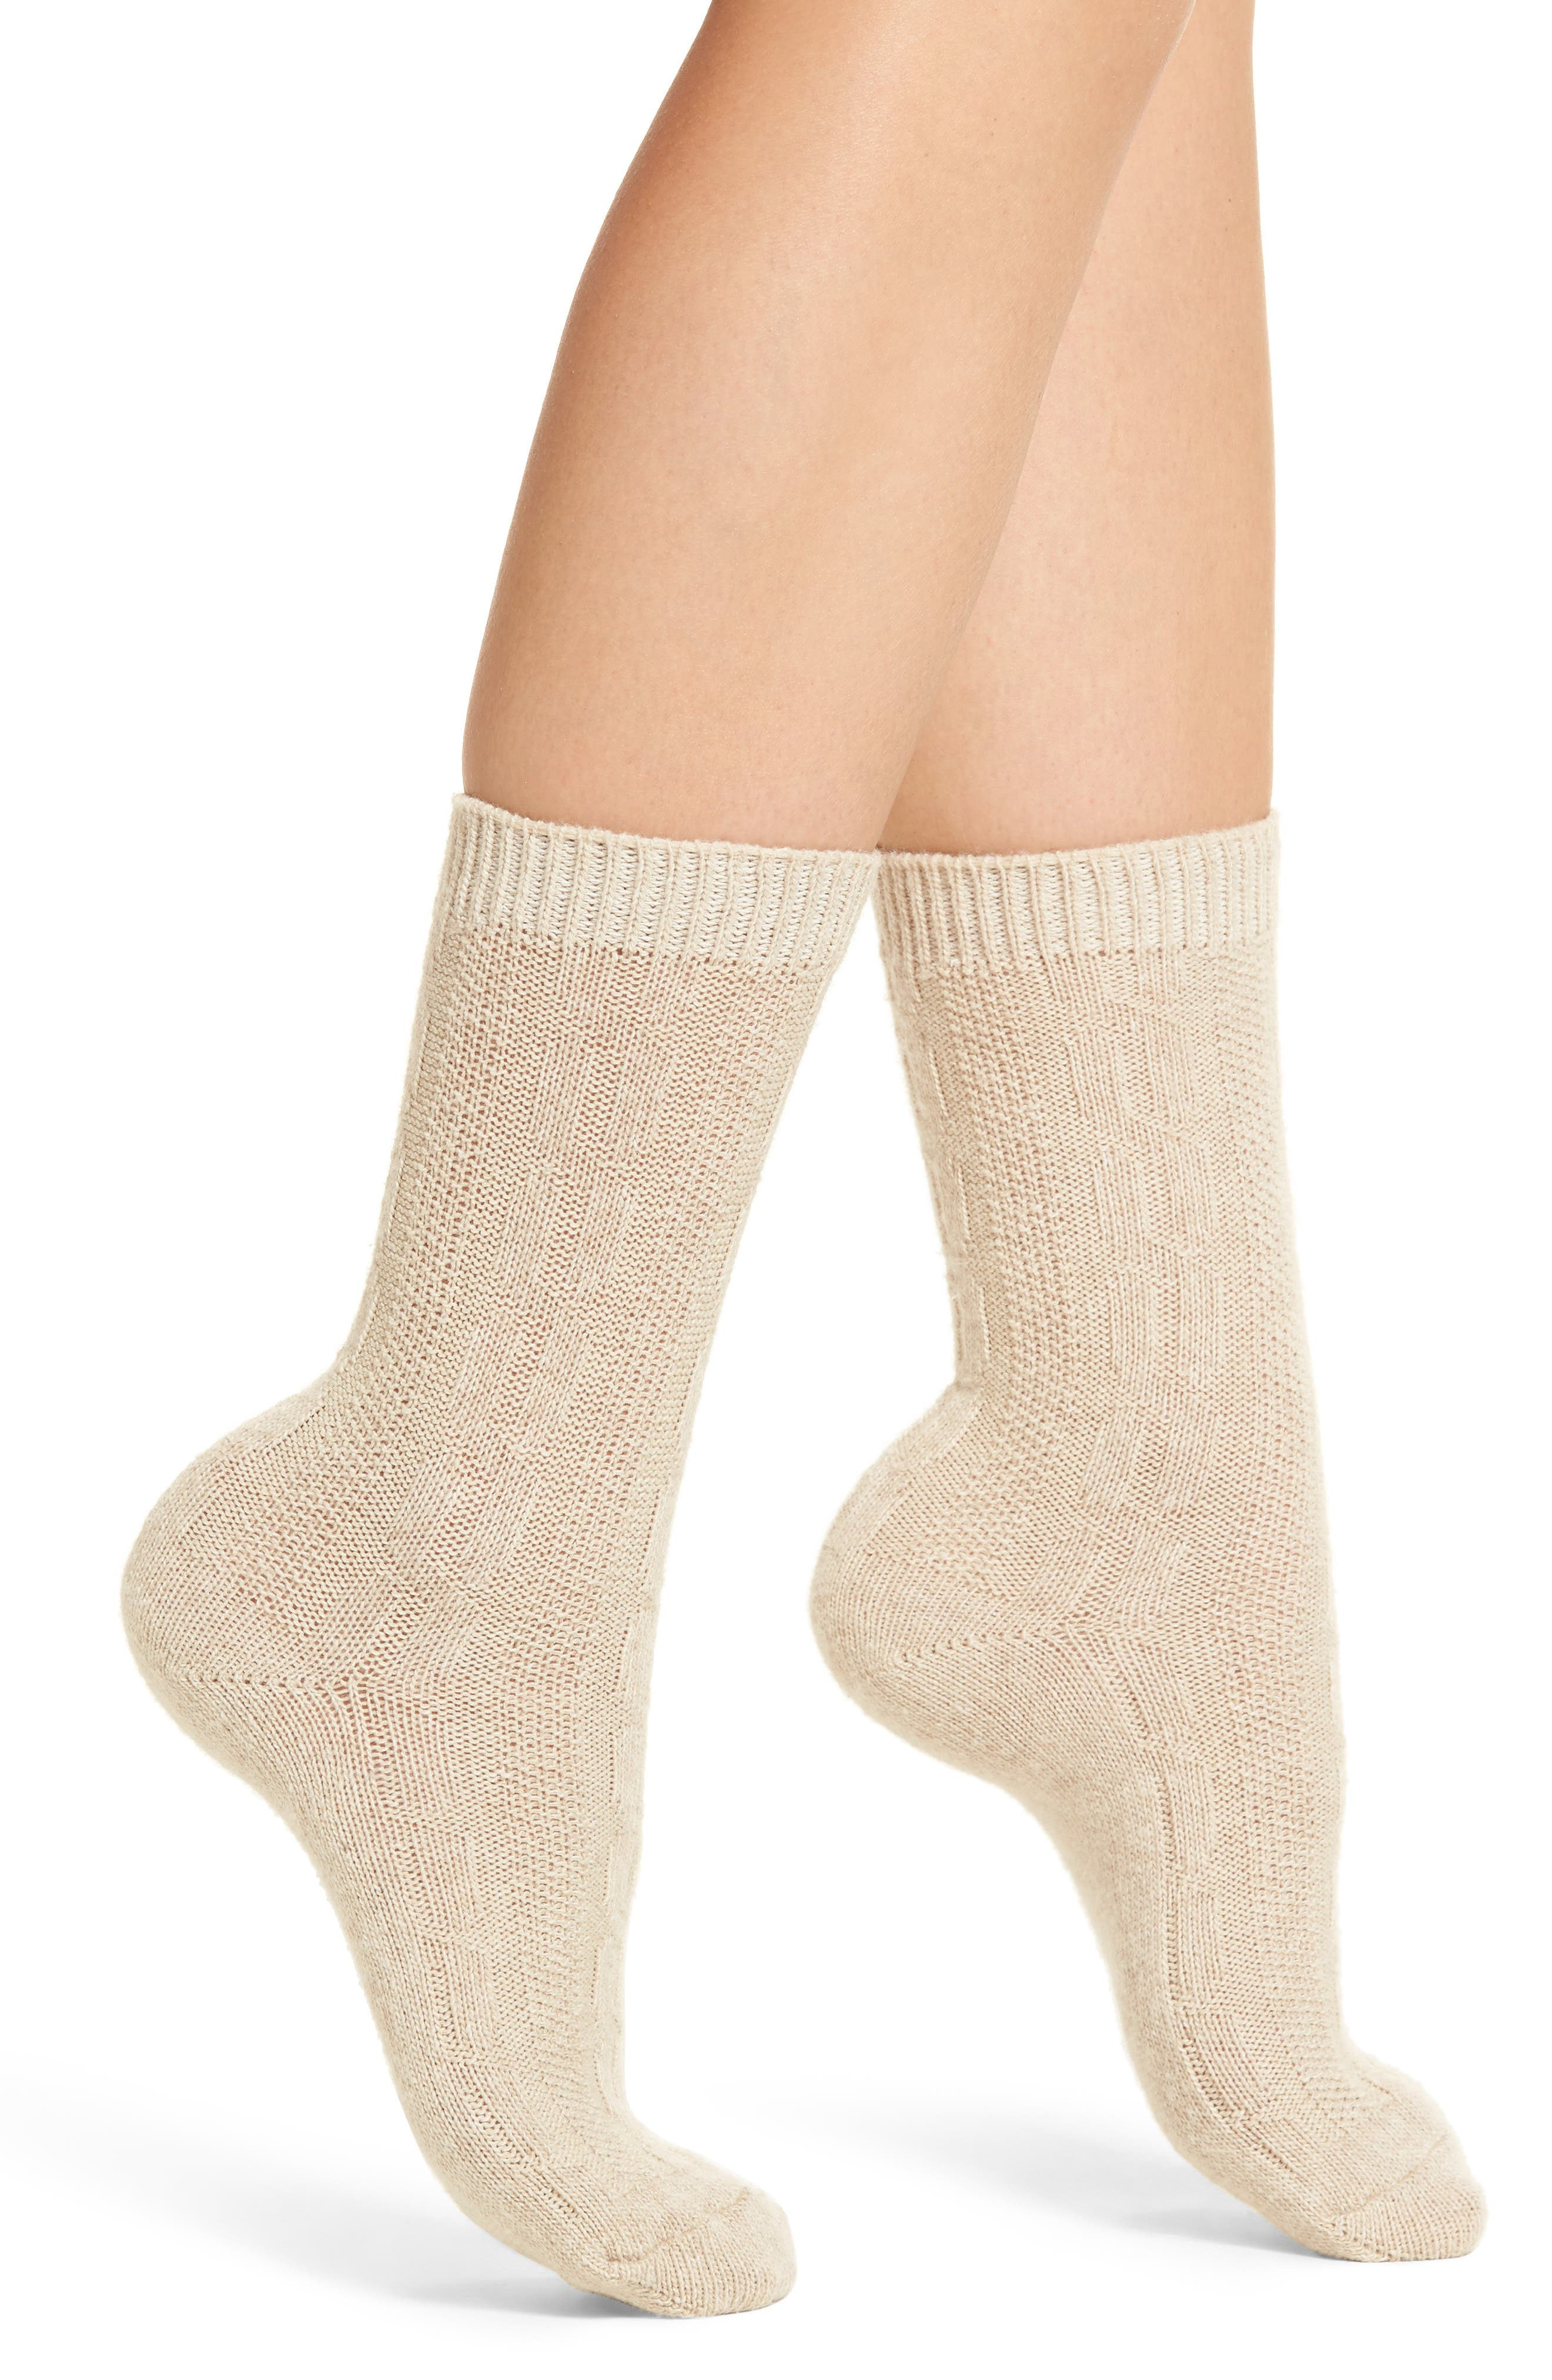 Nordstrom 'Luxury' Cable Knit Crew Socks